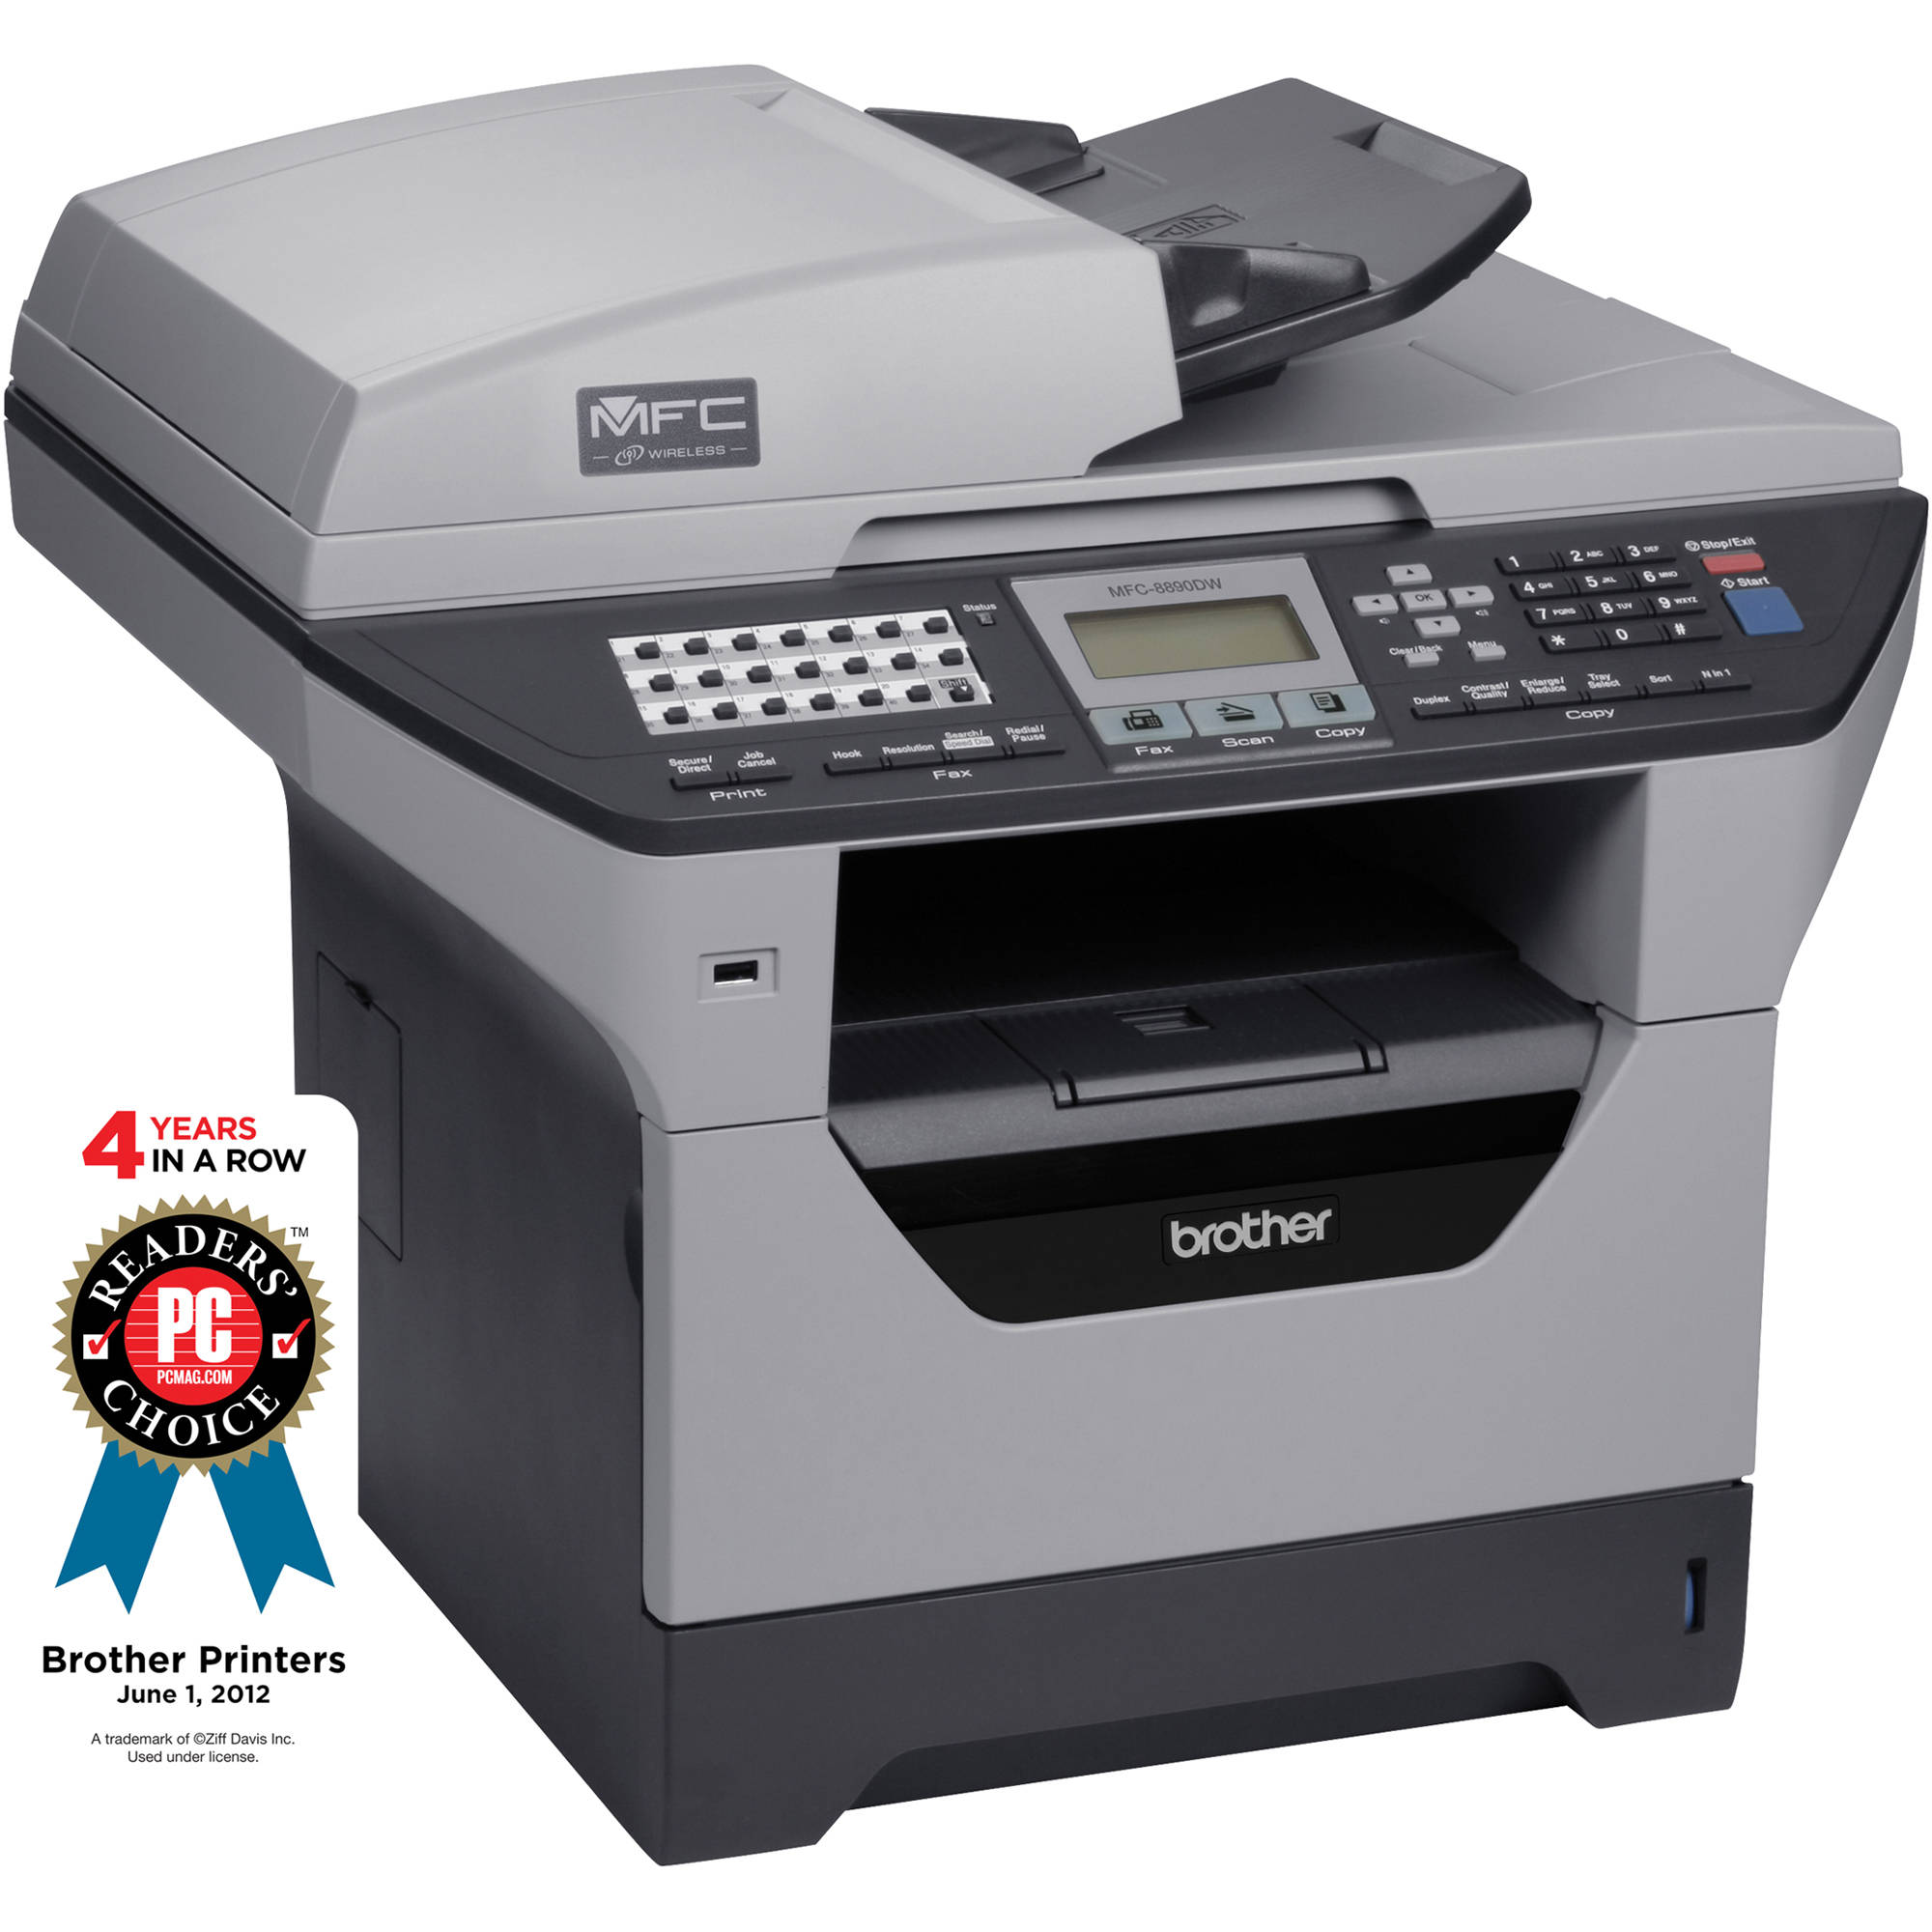 BROTHER MFC-8890DW PRINTER WINDOWS 8 DRIVER